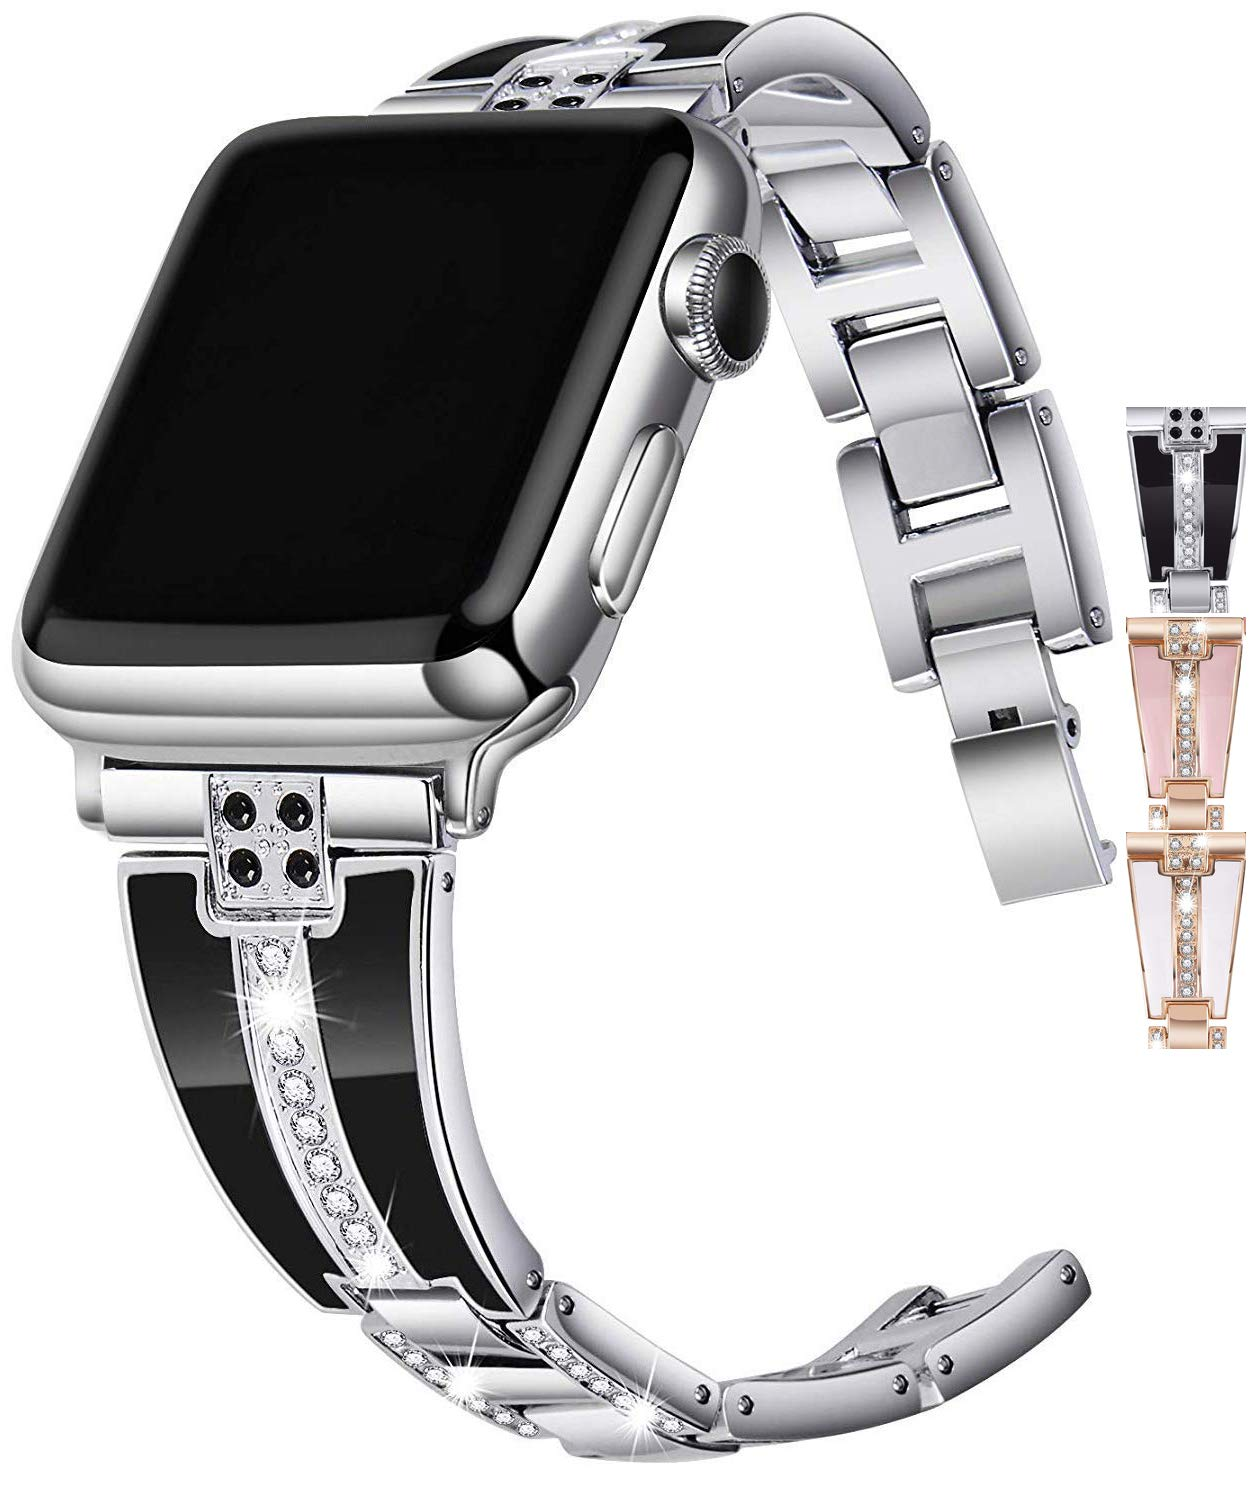 JSGJMY Bling Bands Compatible with Apple Watch Band 38mm 40mm 42mm 44mm with Case,Women Diamond Rhinestone Metal Jewelry Wristband Strap for iwatch Series 5/4/3/2/1 (Silver, 38mm/40mm) by JSGJMY